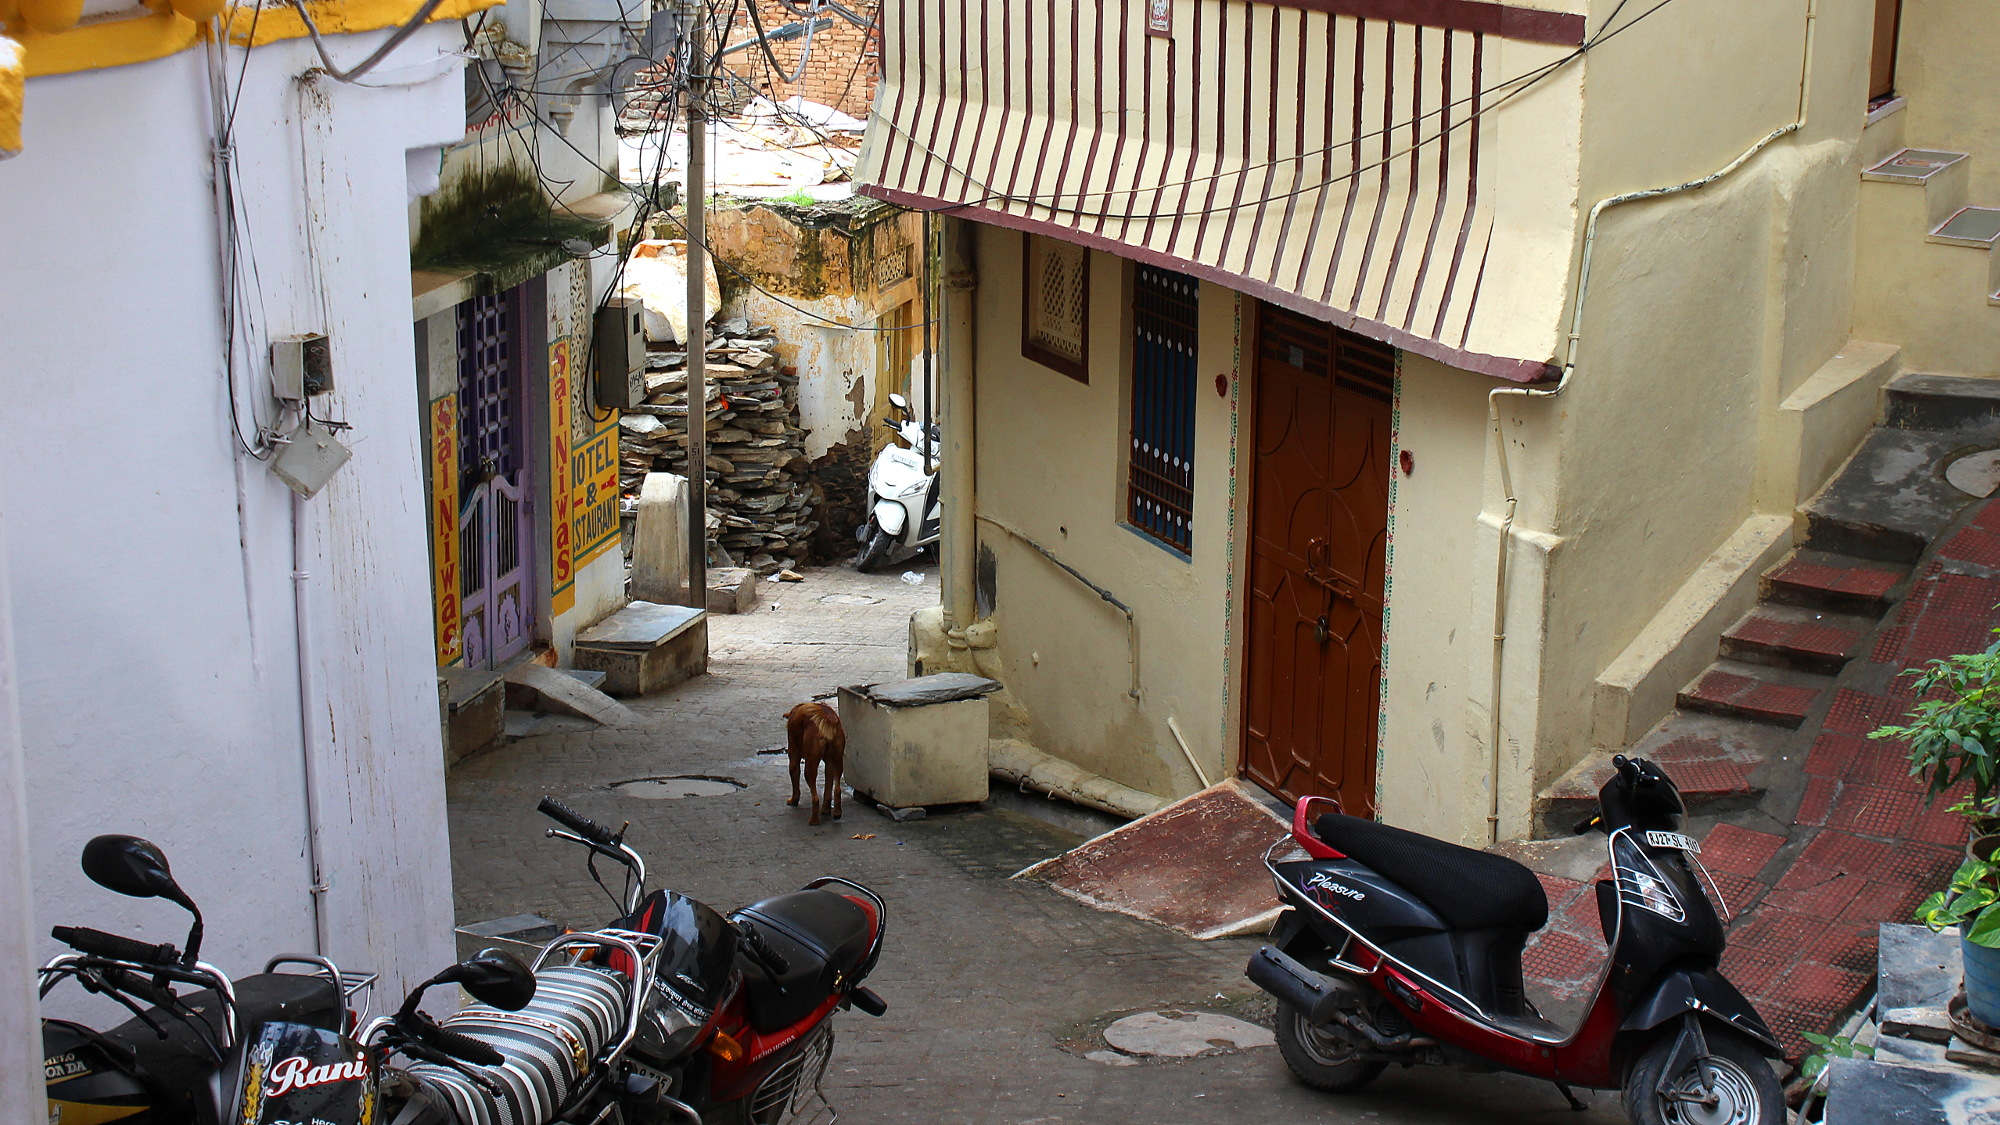 Another narrow side street in Udaipur with parked motorcycles and a stray dog walking downhill.